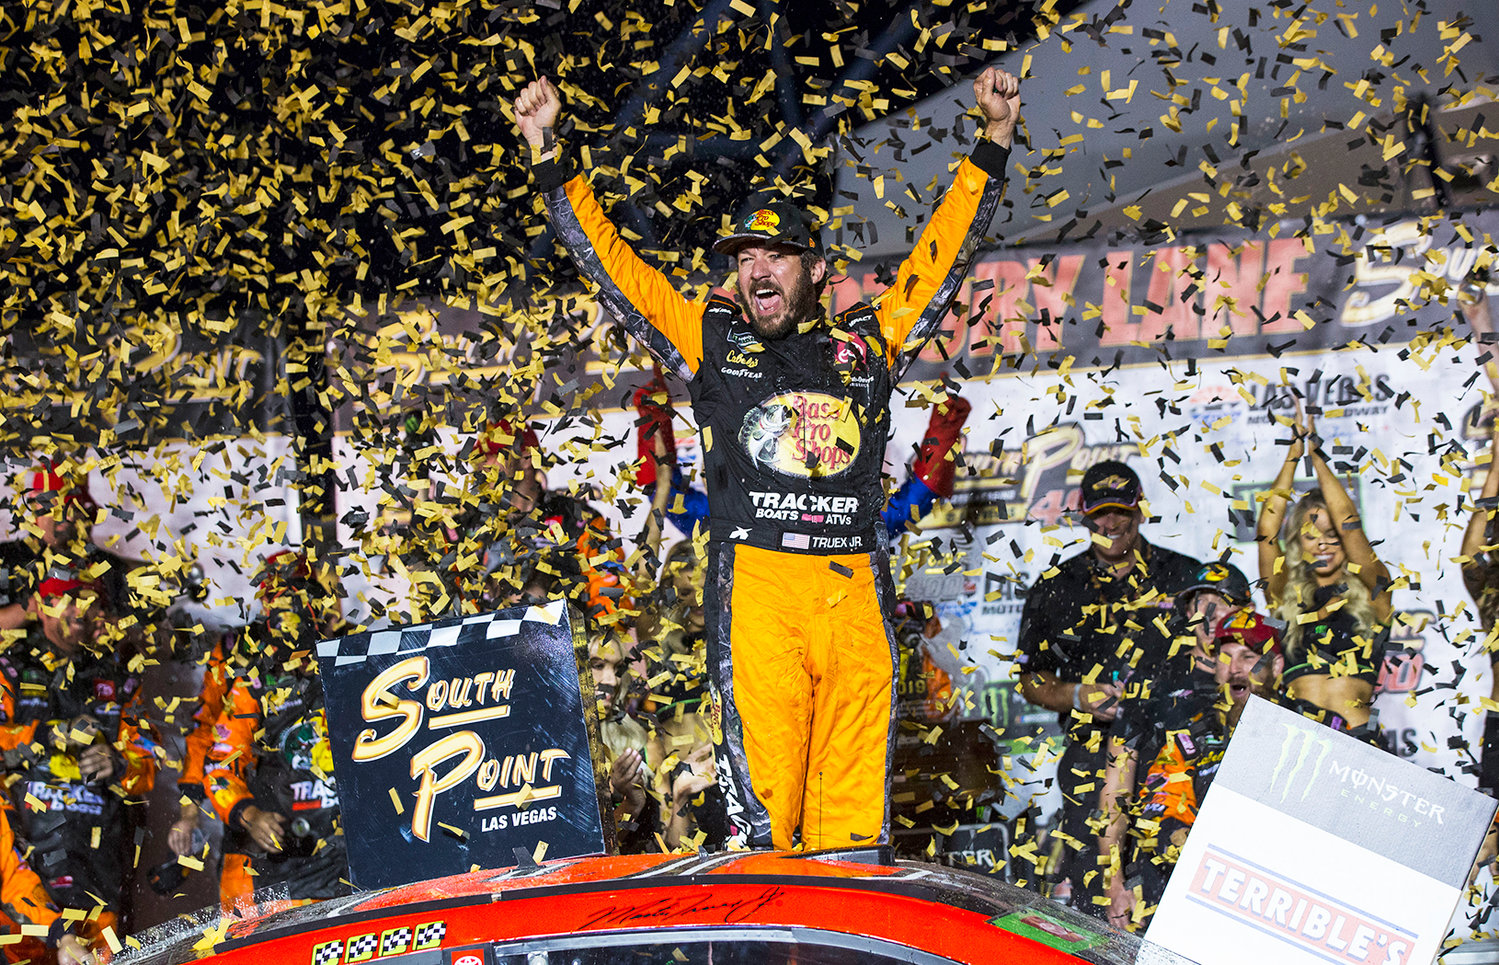 MARTIN TRUEX Jr. celebrates after winning a NASCAR Cup Series race at the Las Vegas Motor Speedway on Sunday.